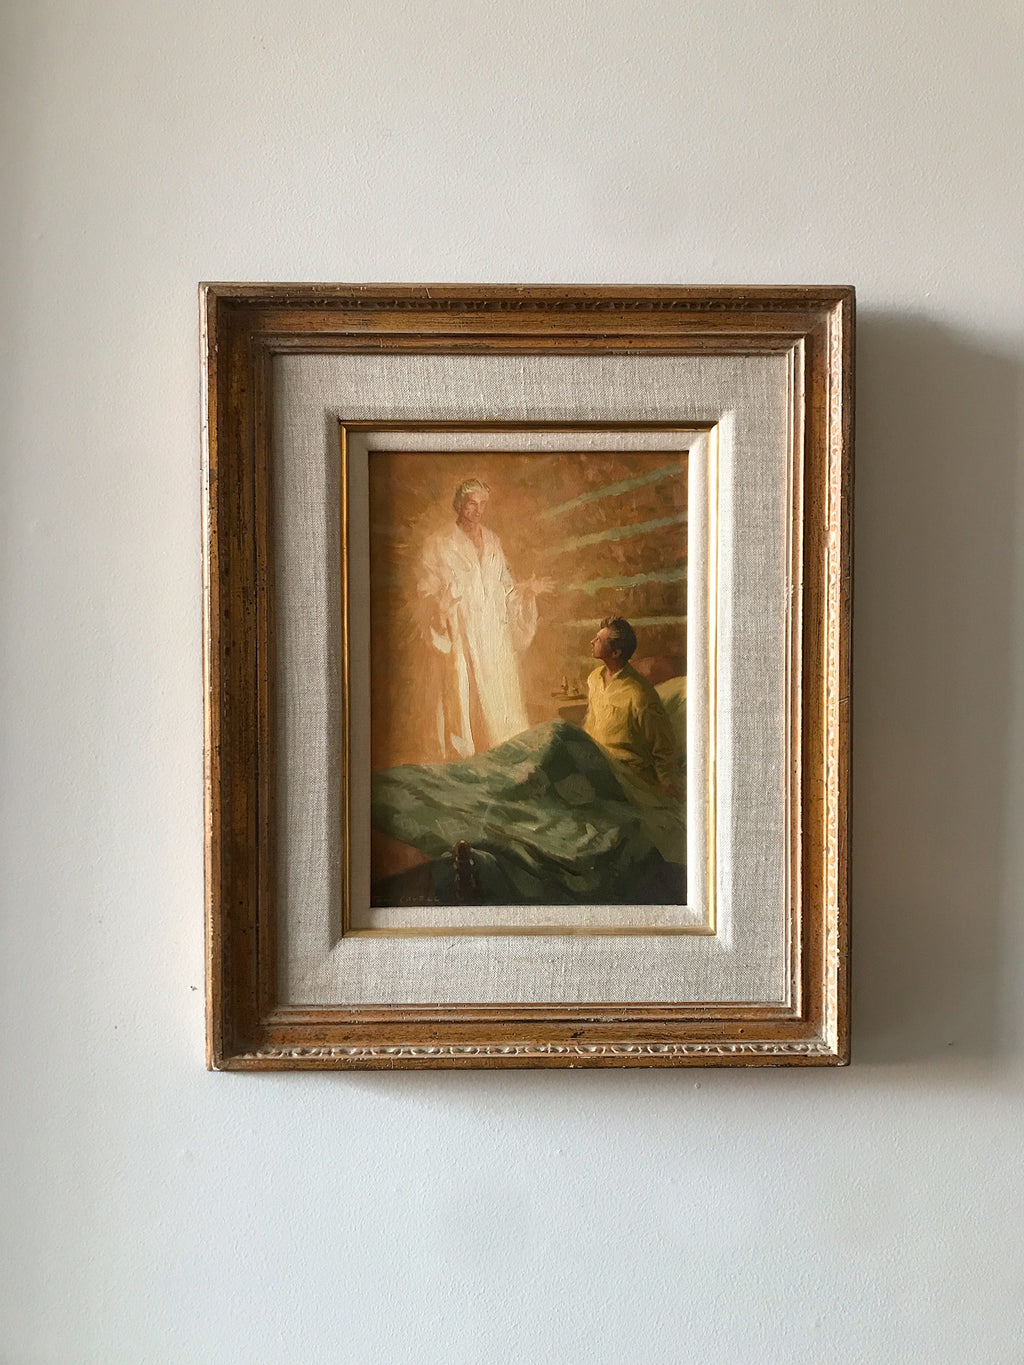 Tom Lovell<br/>Study of Moroni Appearing